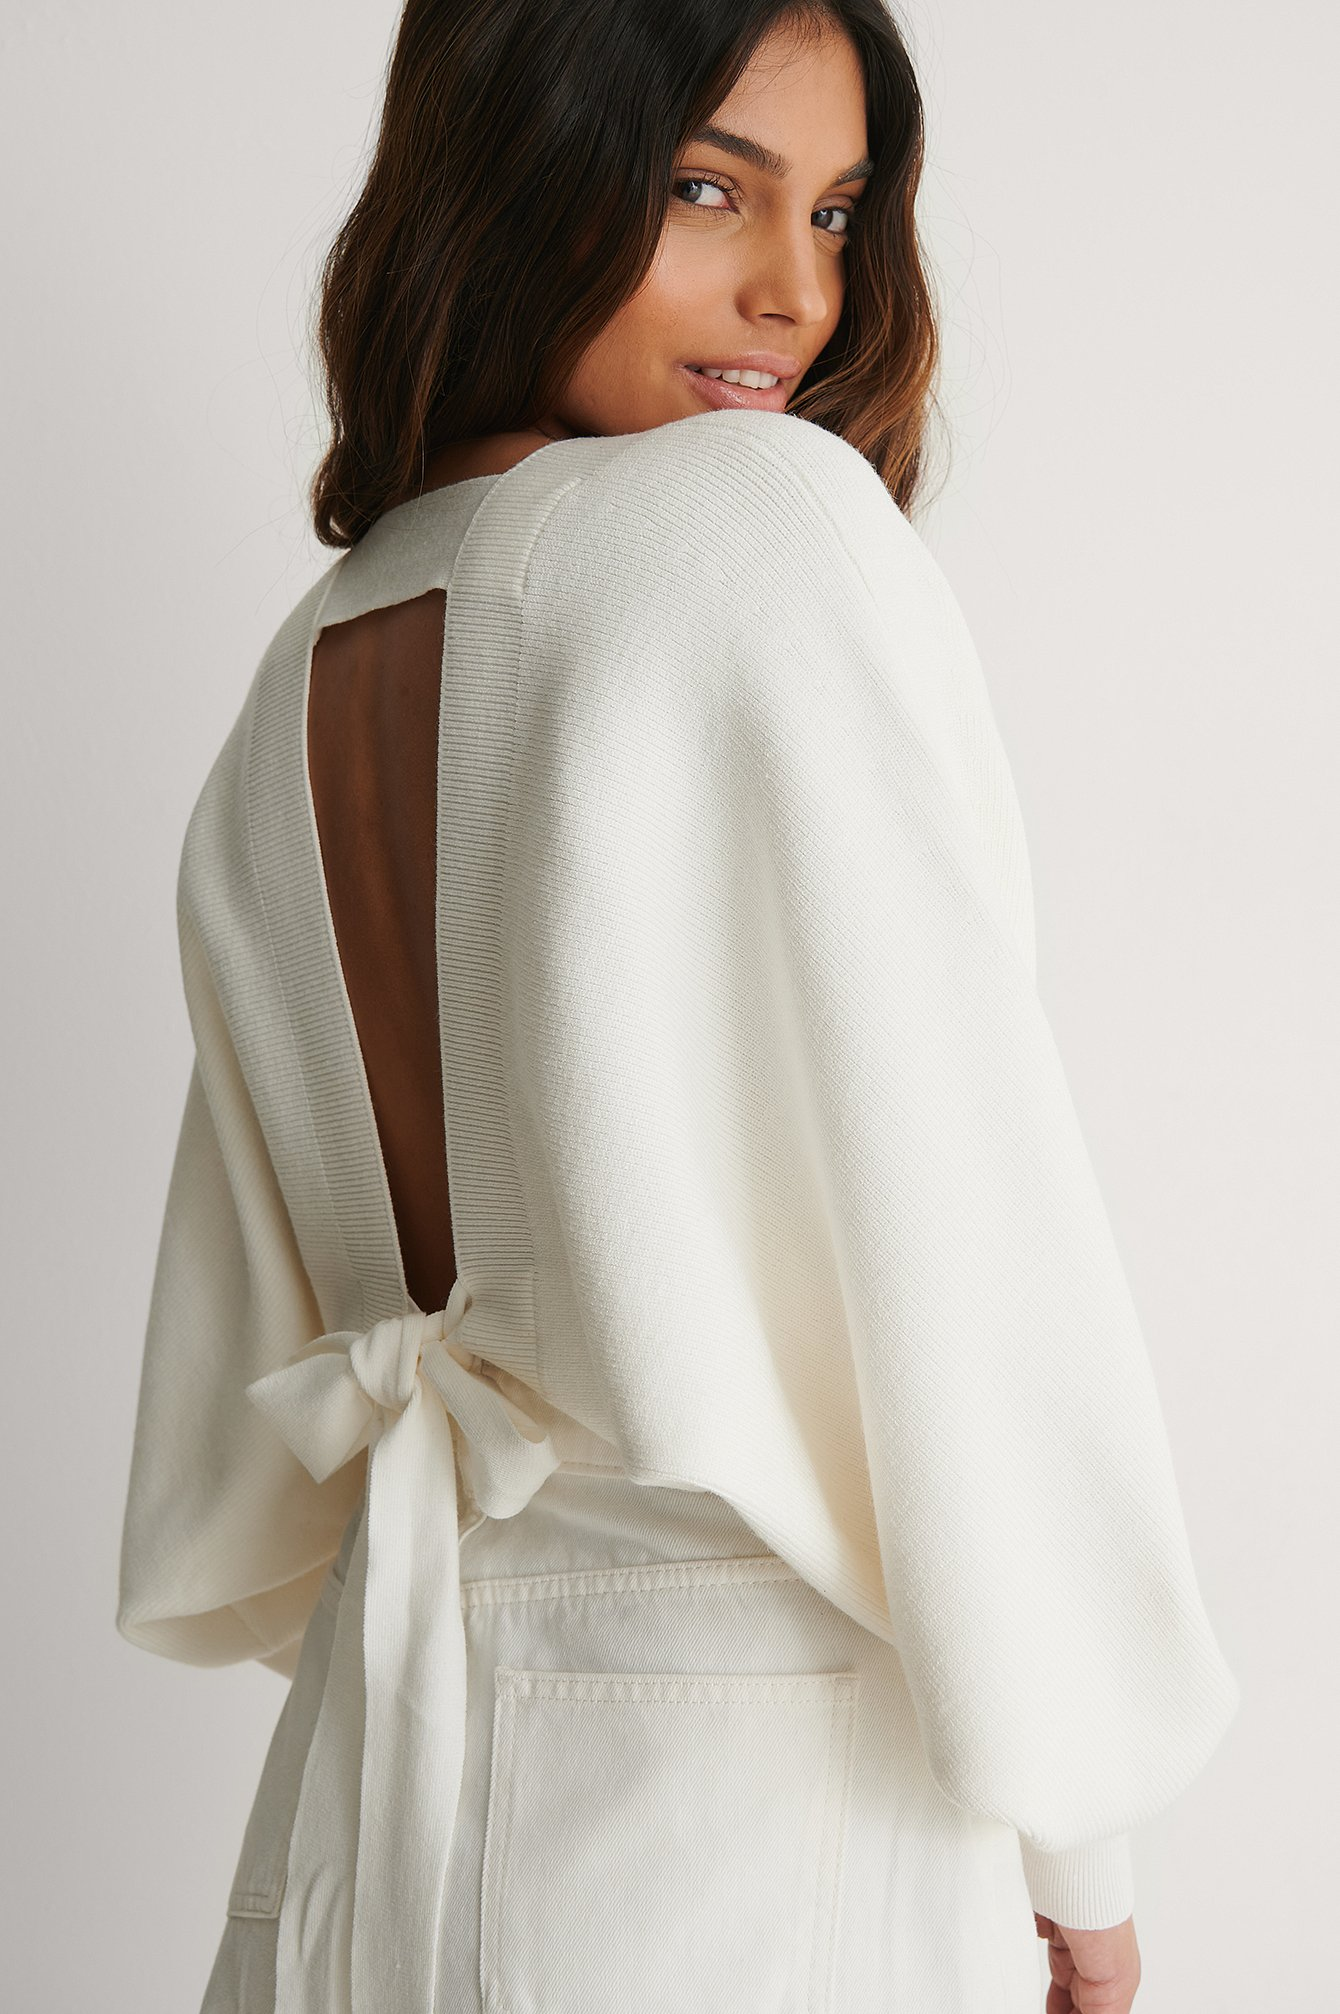 Offwhite Knot Detail Knitted Bolero